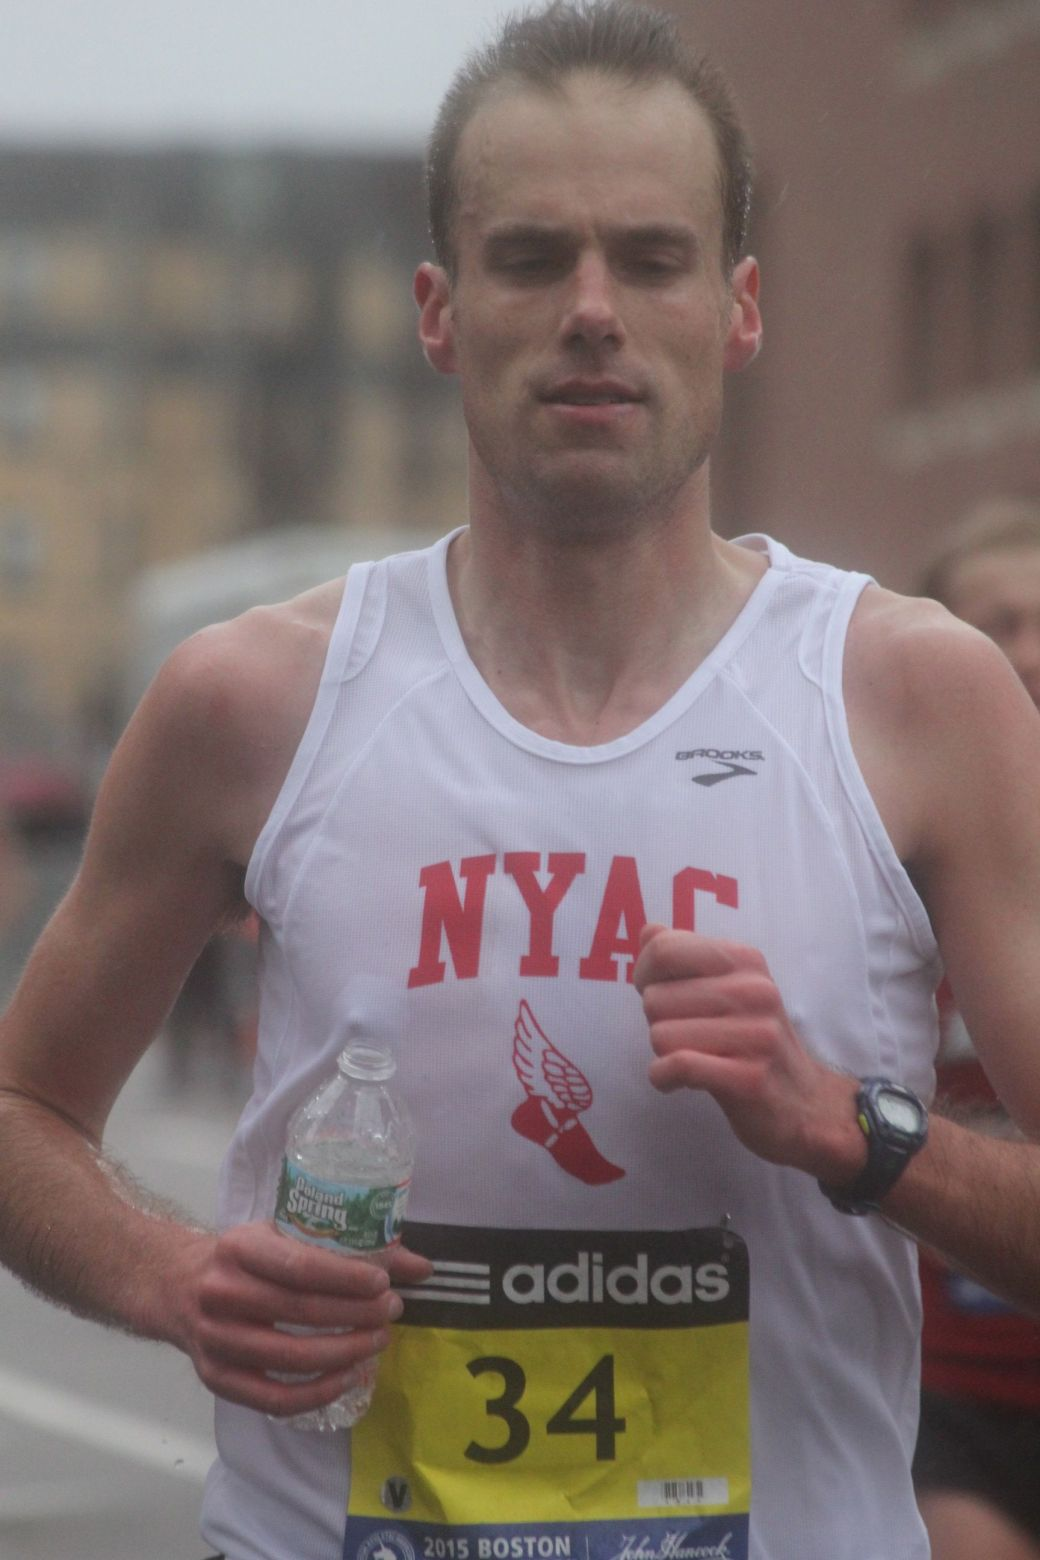 boston marathon april 20 2015 racer number 34 2